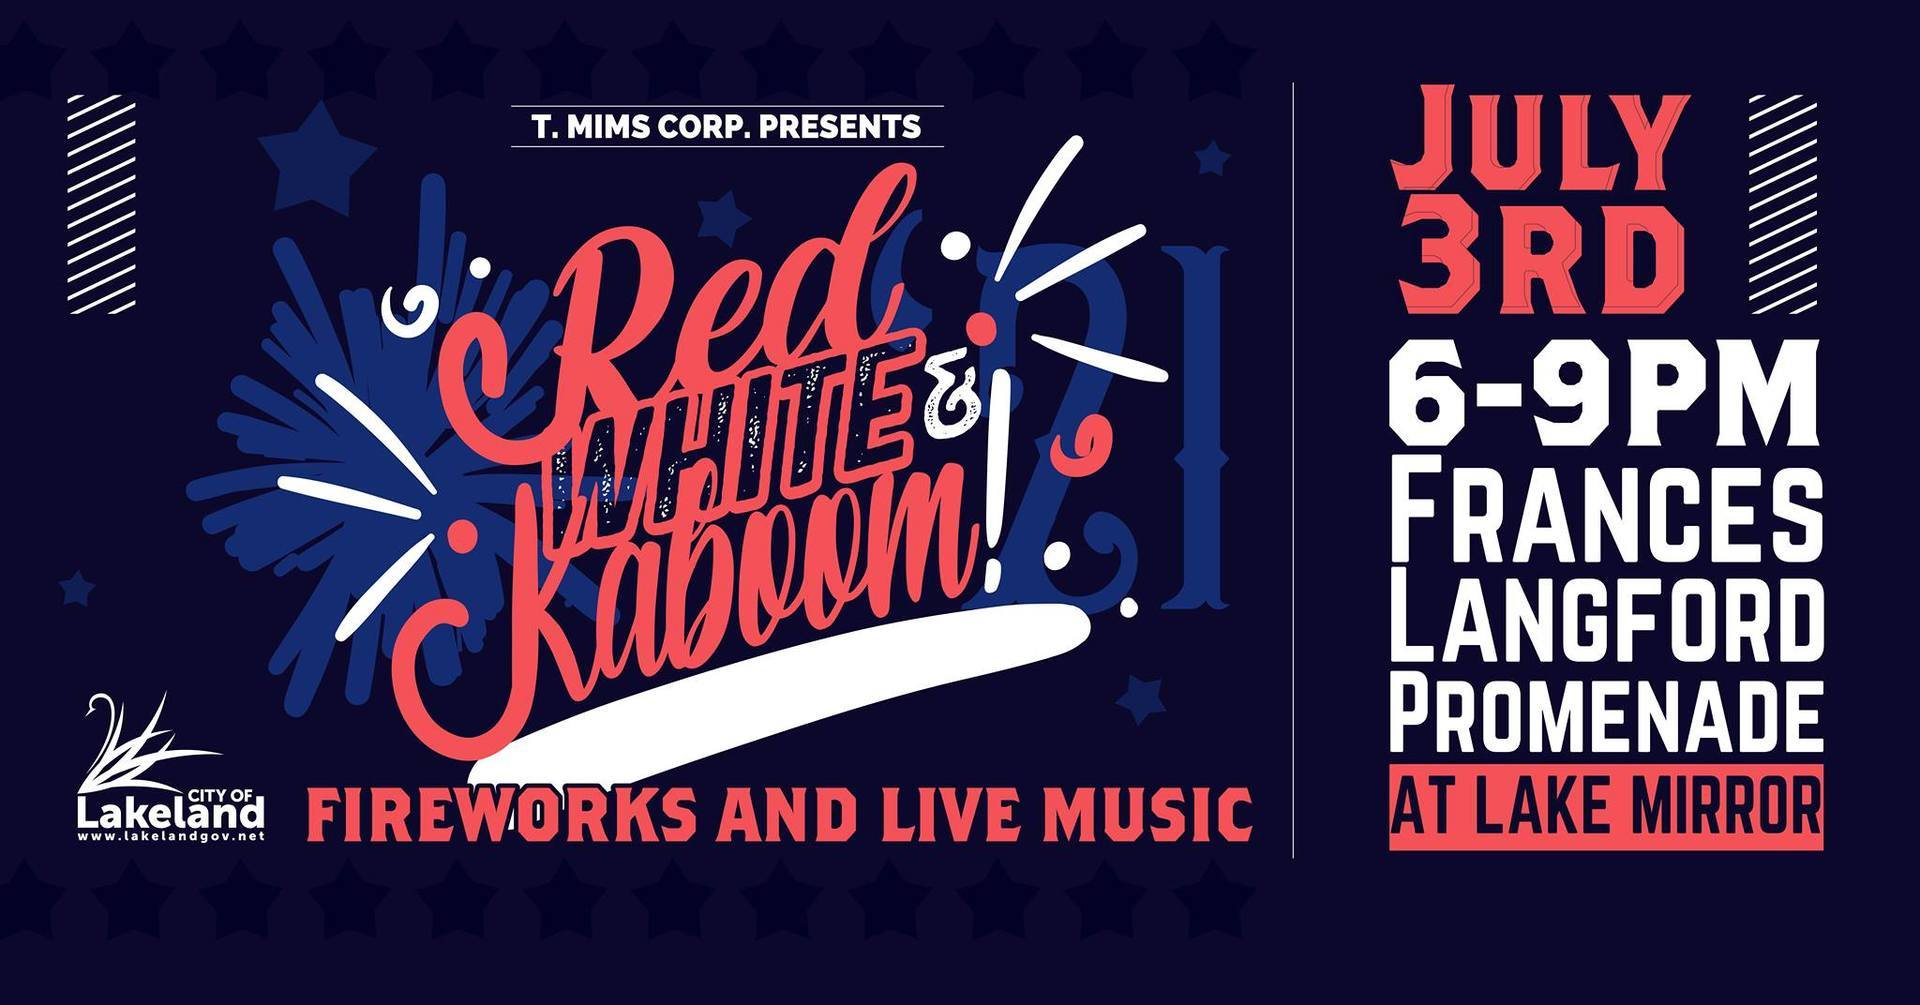 T. MIMS CORP. RED, WHITE & KABOOM INDEPENDENCE DAY CELEBRATION